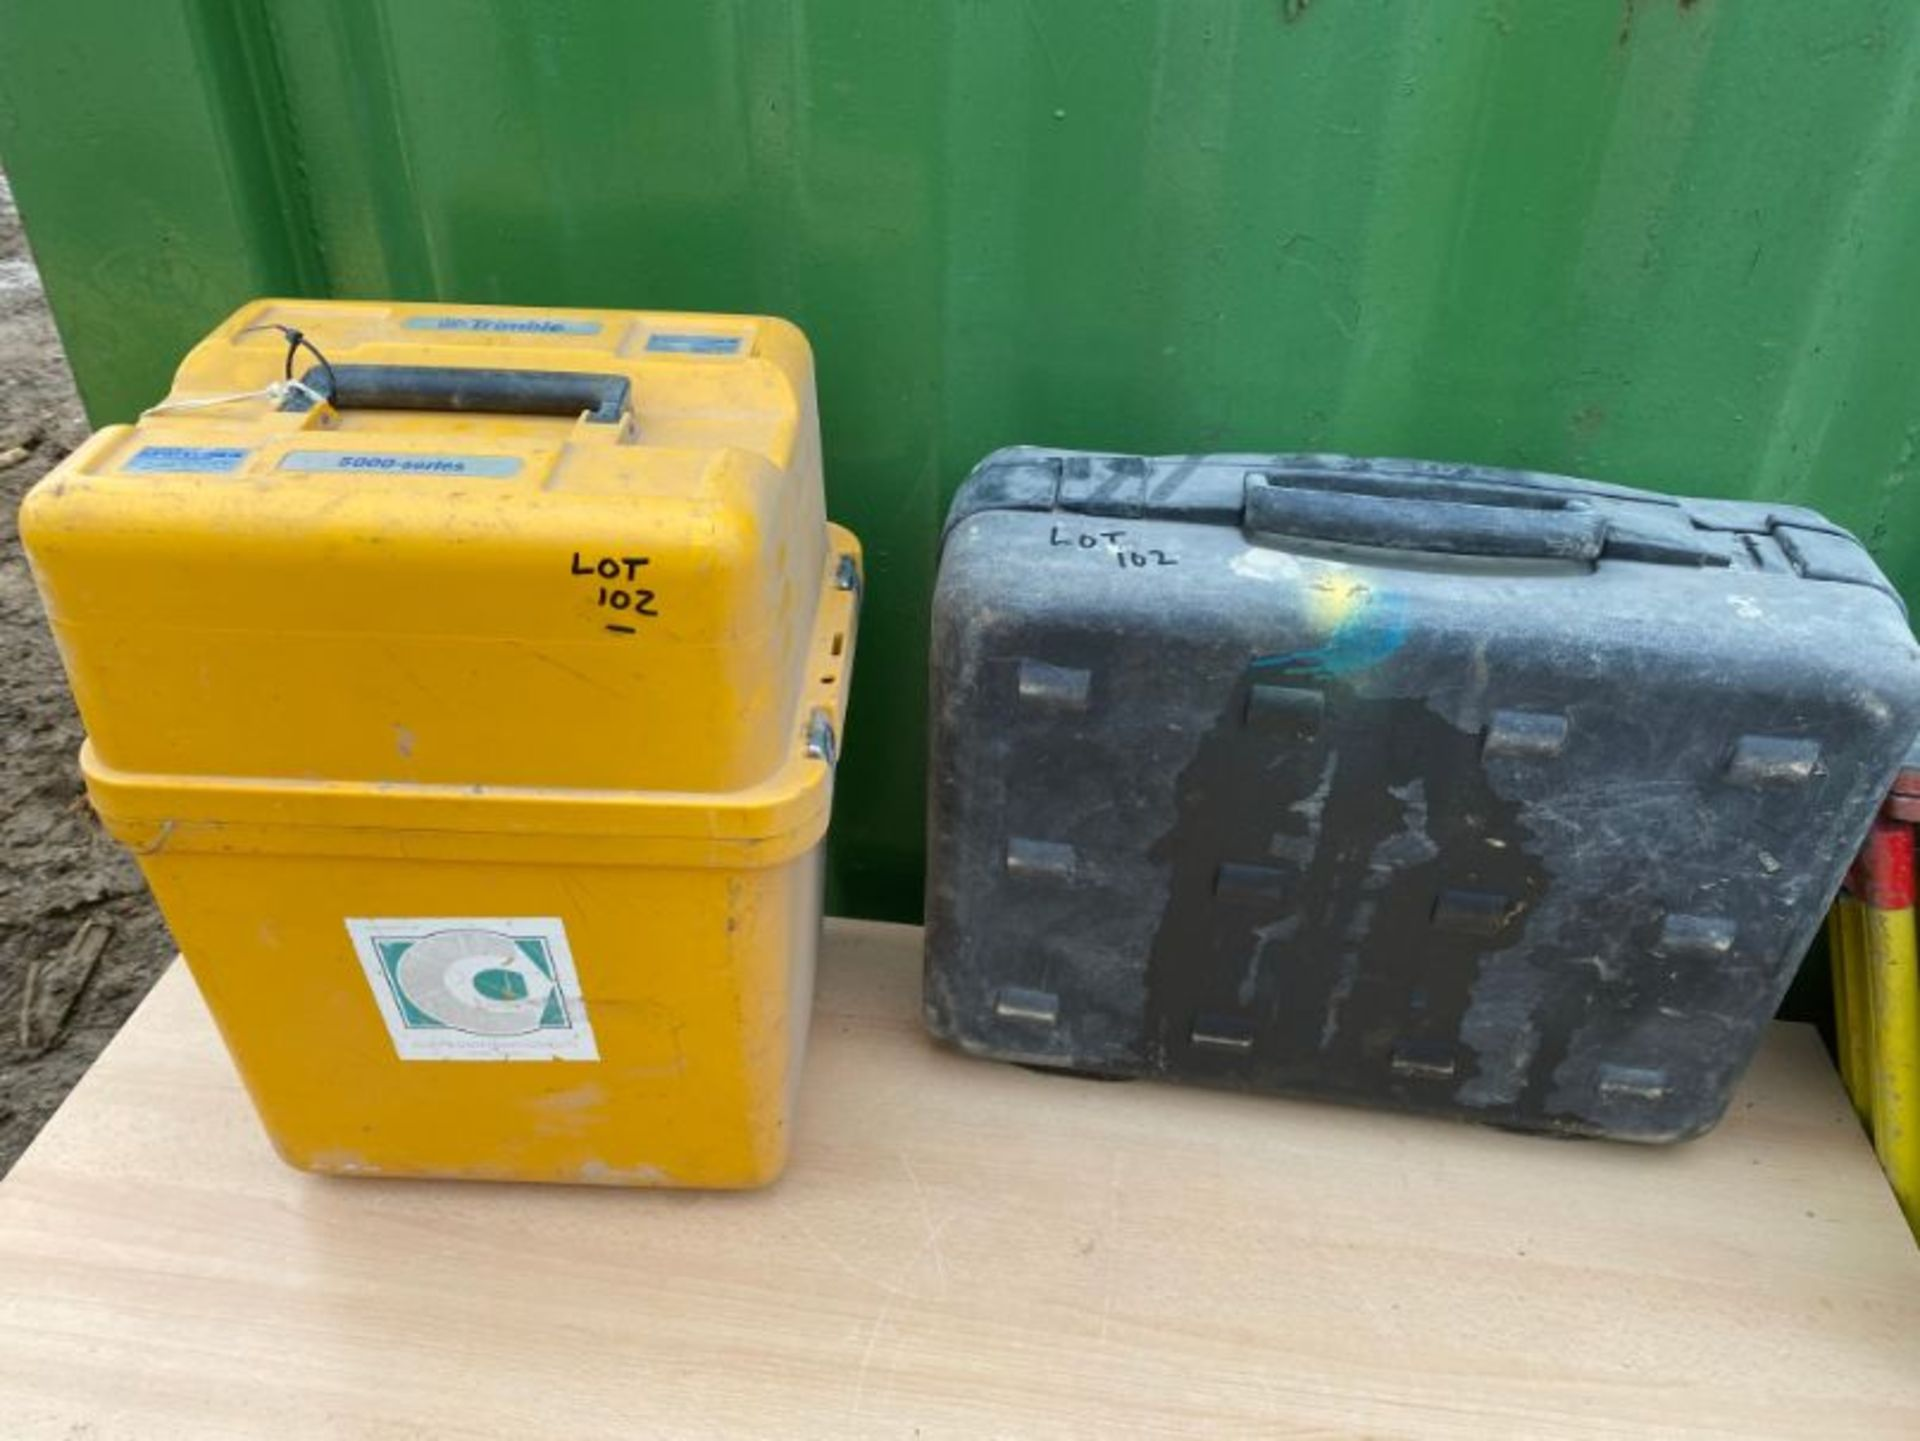 Lot 102 - Trimble Direct Reflex DR200+ reflectorless robotic total station, serial no: 5131/0497: with ACU,